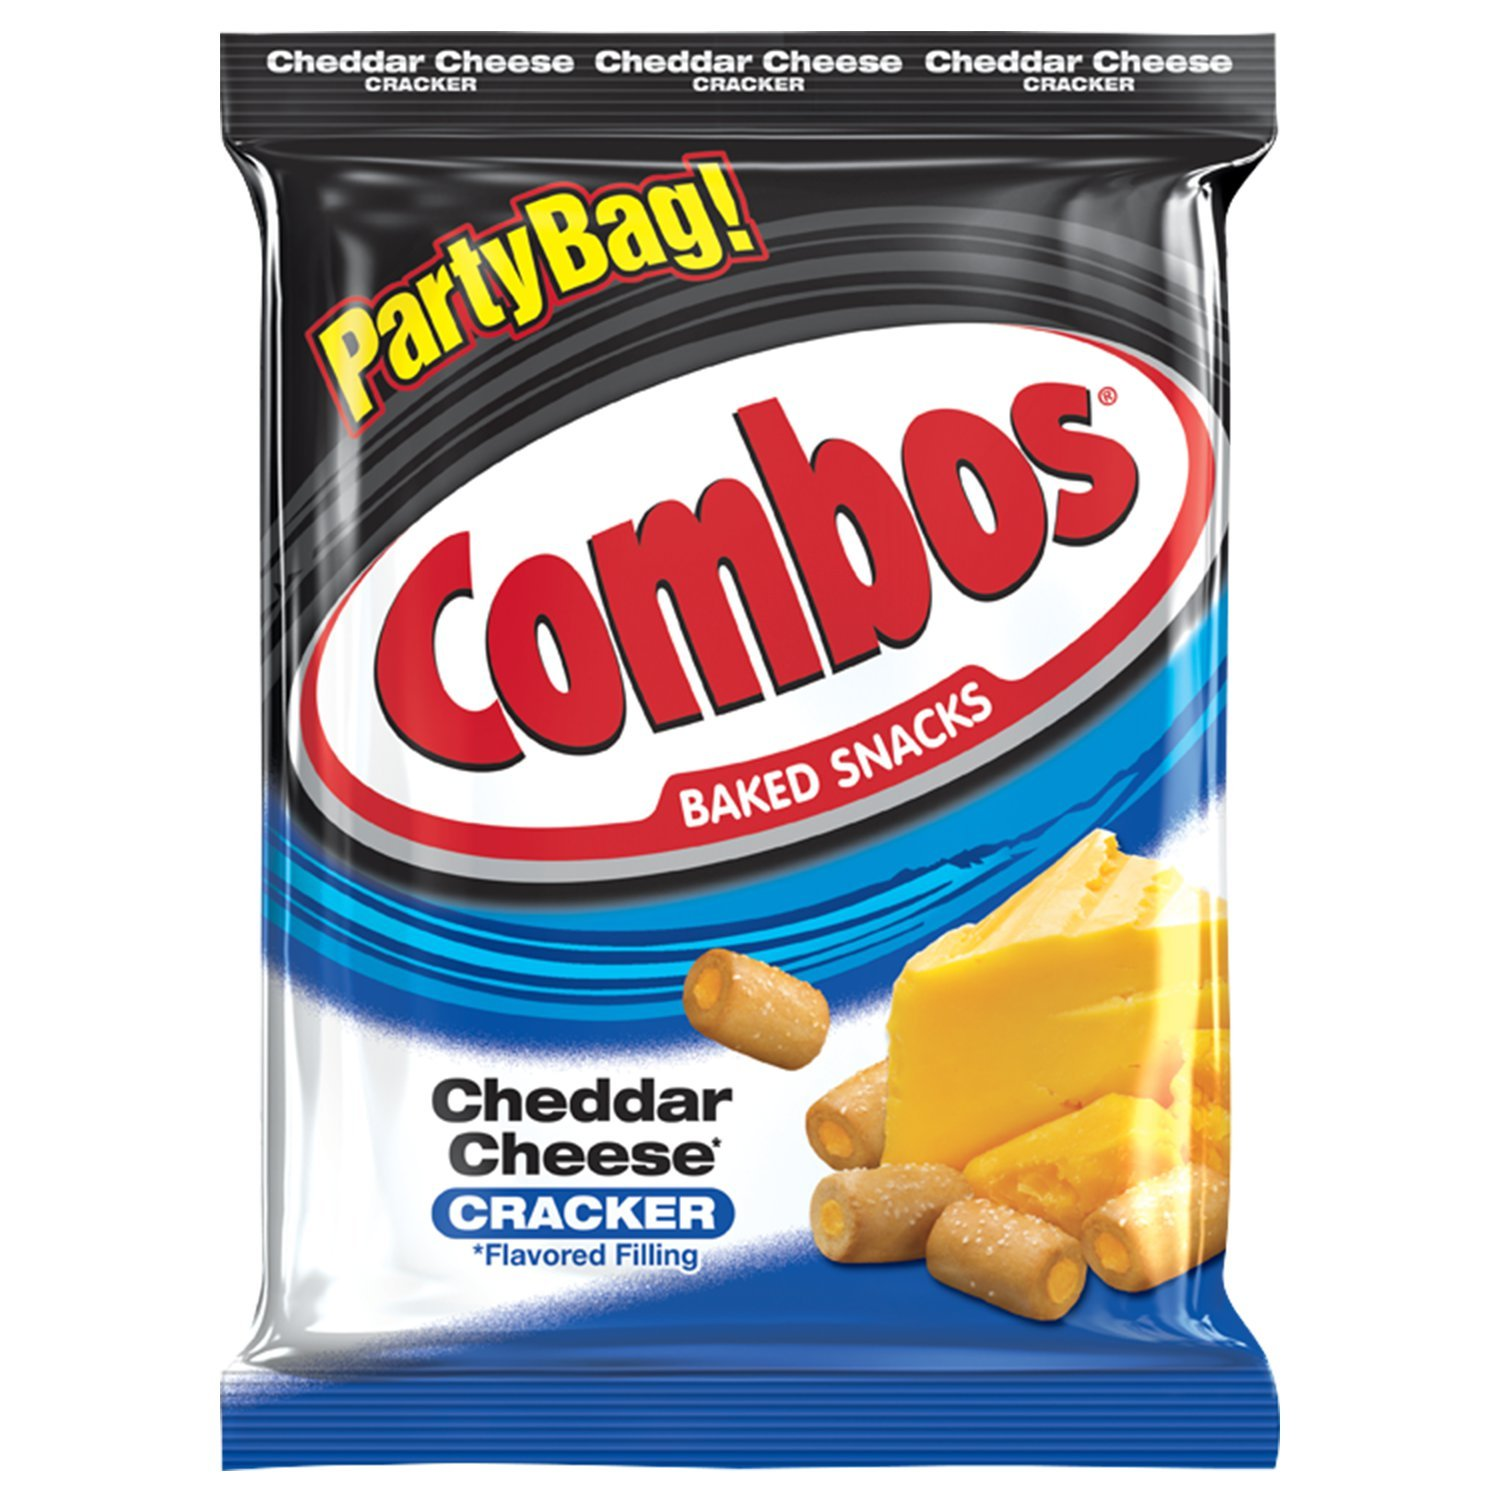 COMBOS Cheddar Cheese Cracker Baked Snacks 15-Ounce Bag by Combos